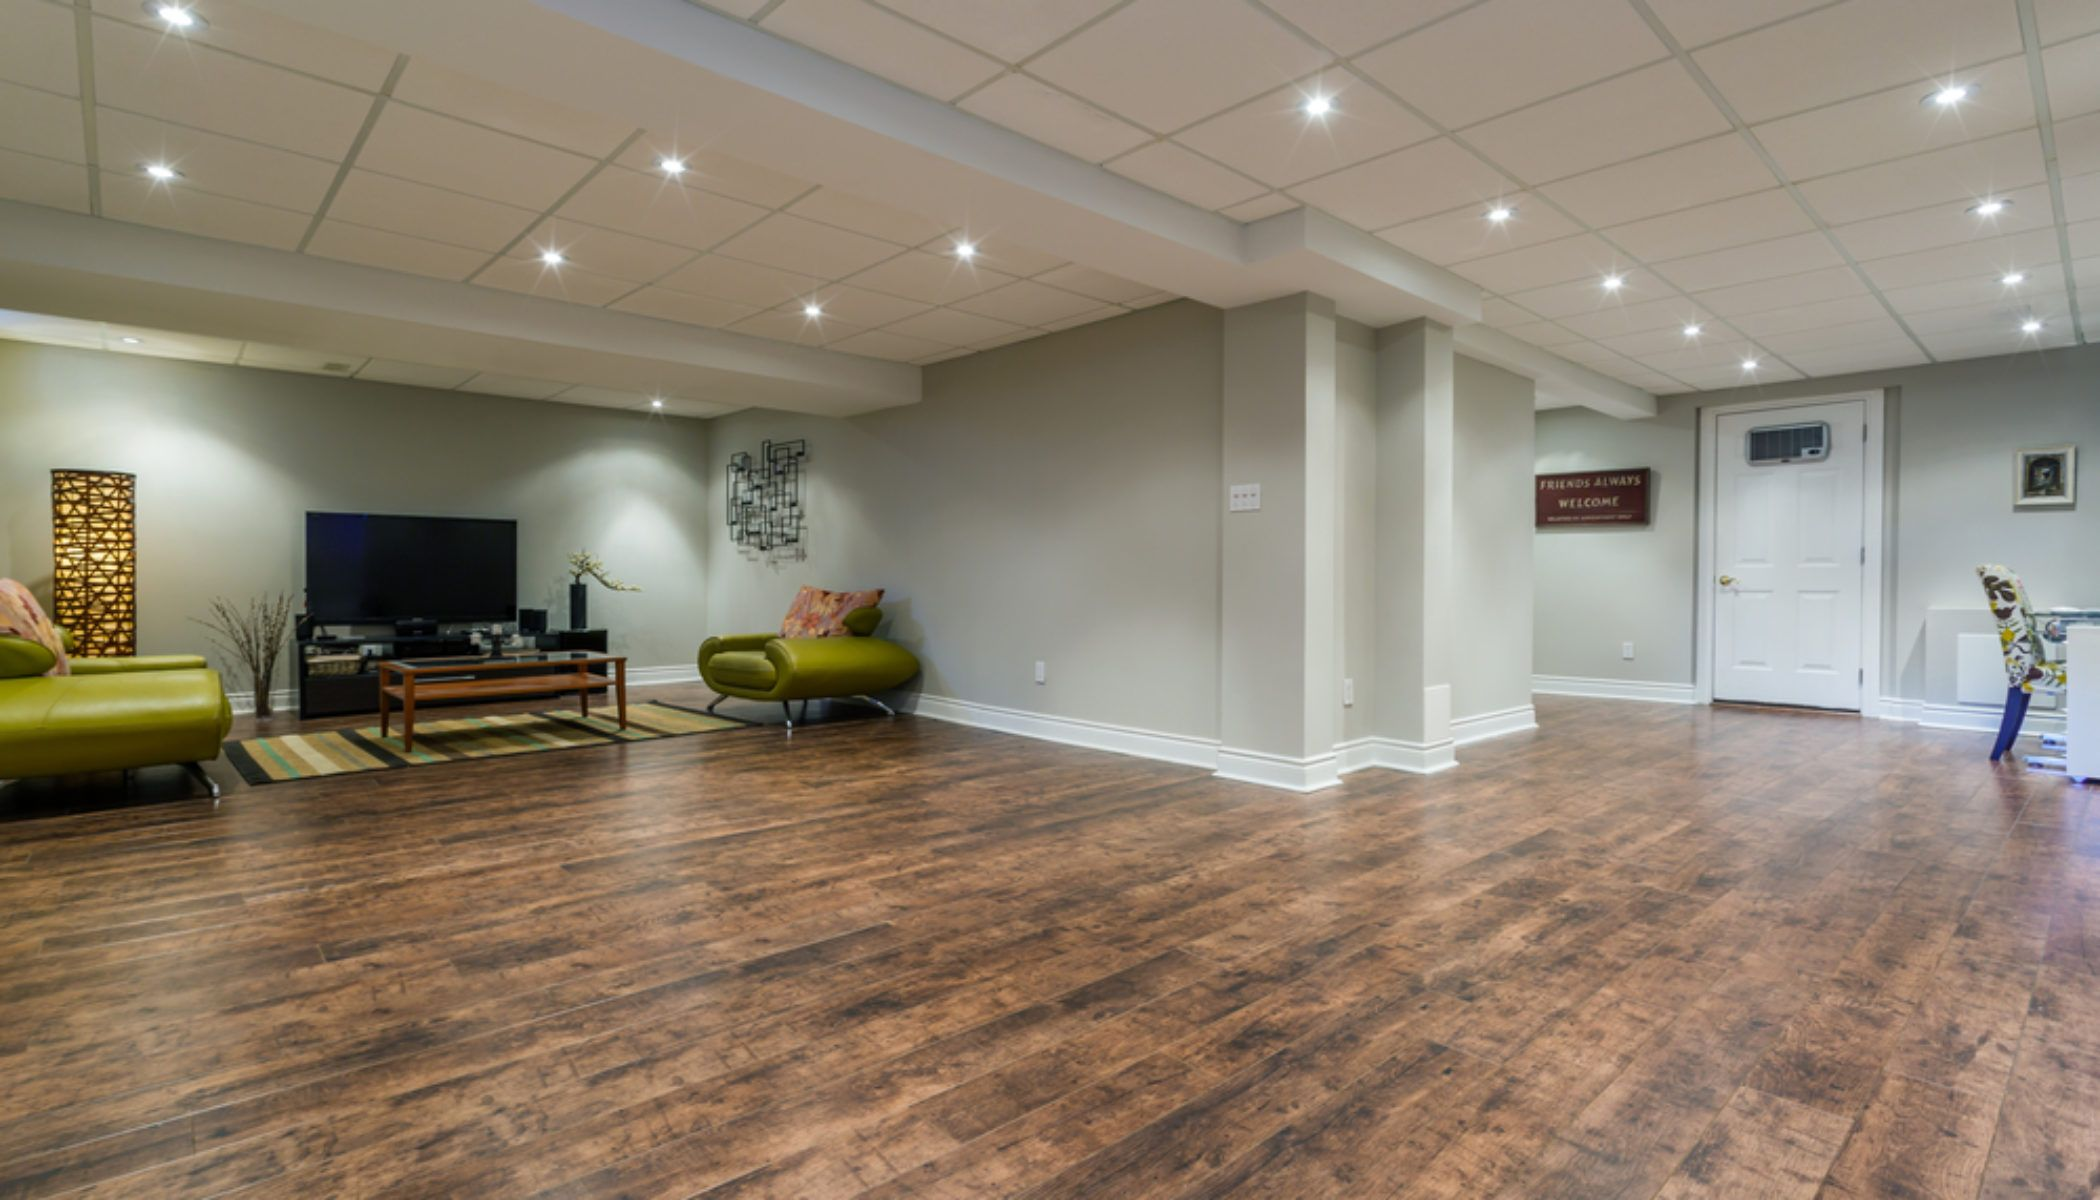 4 Of The Best Options For Basement Flooring In Your Home Finishing Basement Best Flooring For Basement Basement Flooring